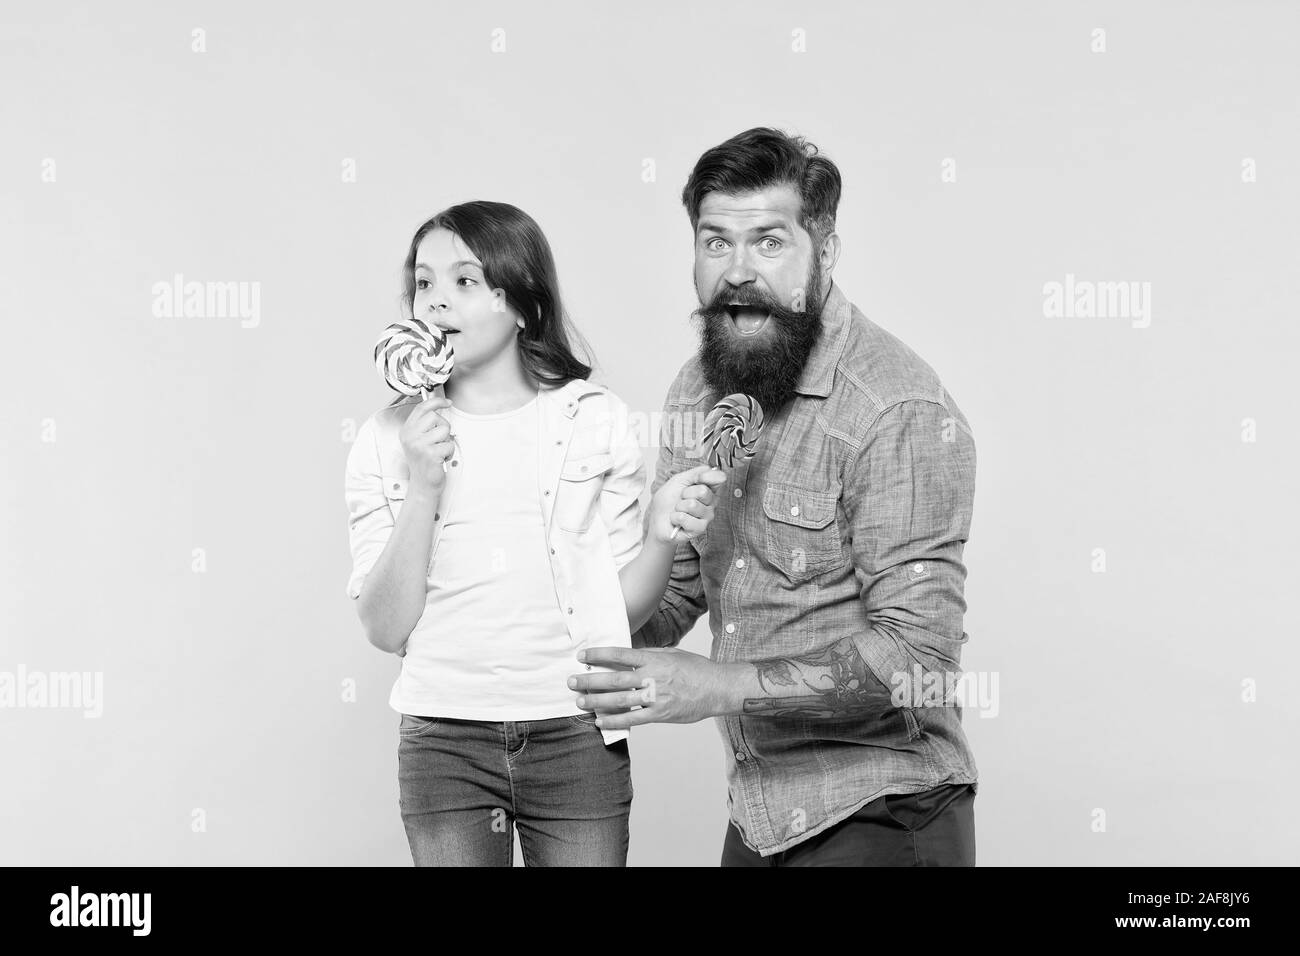 candy shop. happy childhood. Daughter and dad eat candy. bearded hipster man is good father. little girl and dad hold colorful lollipop. summer vibes. happy family. cheerful about dessert. Stock Photo